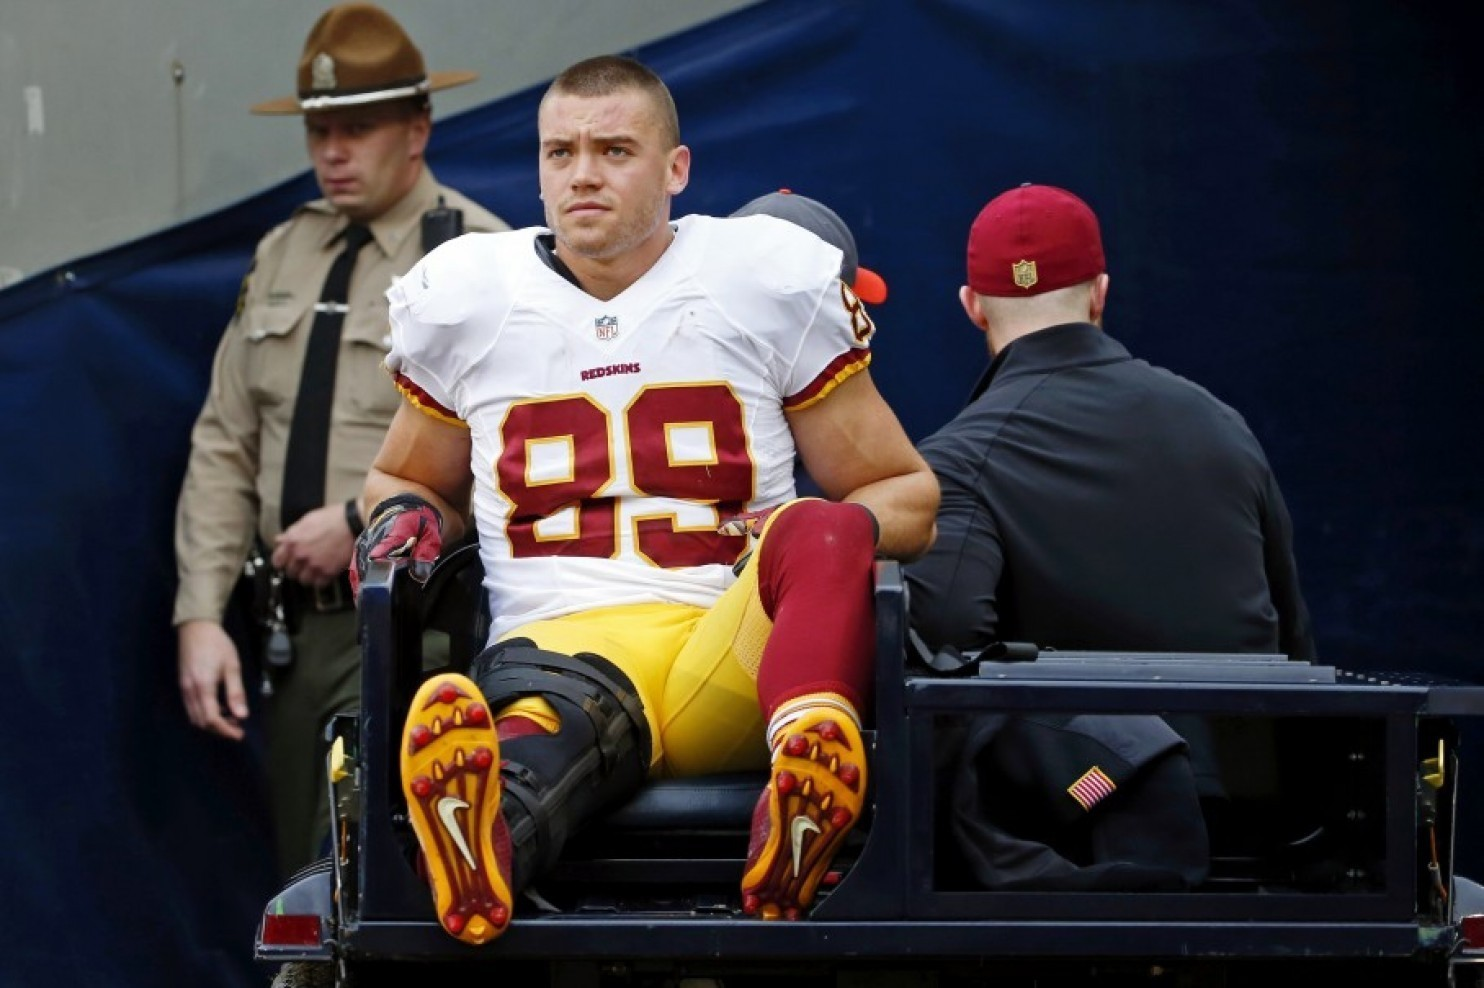 Redskins have lost TE Derek Carrier for the year with a torn ACL and MCL